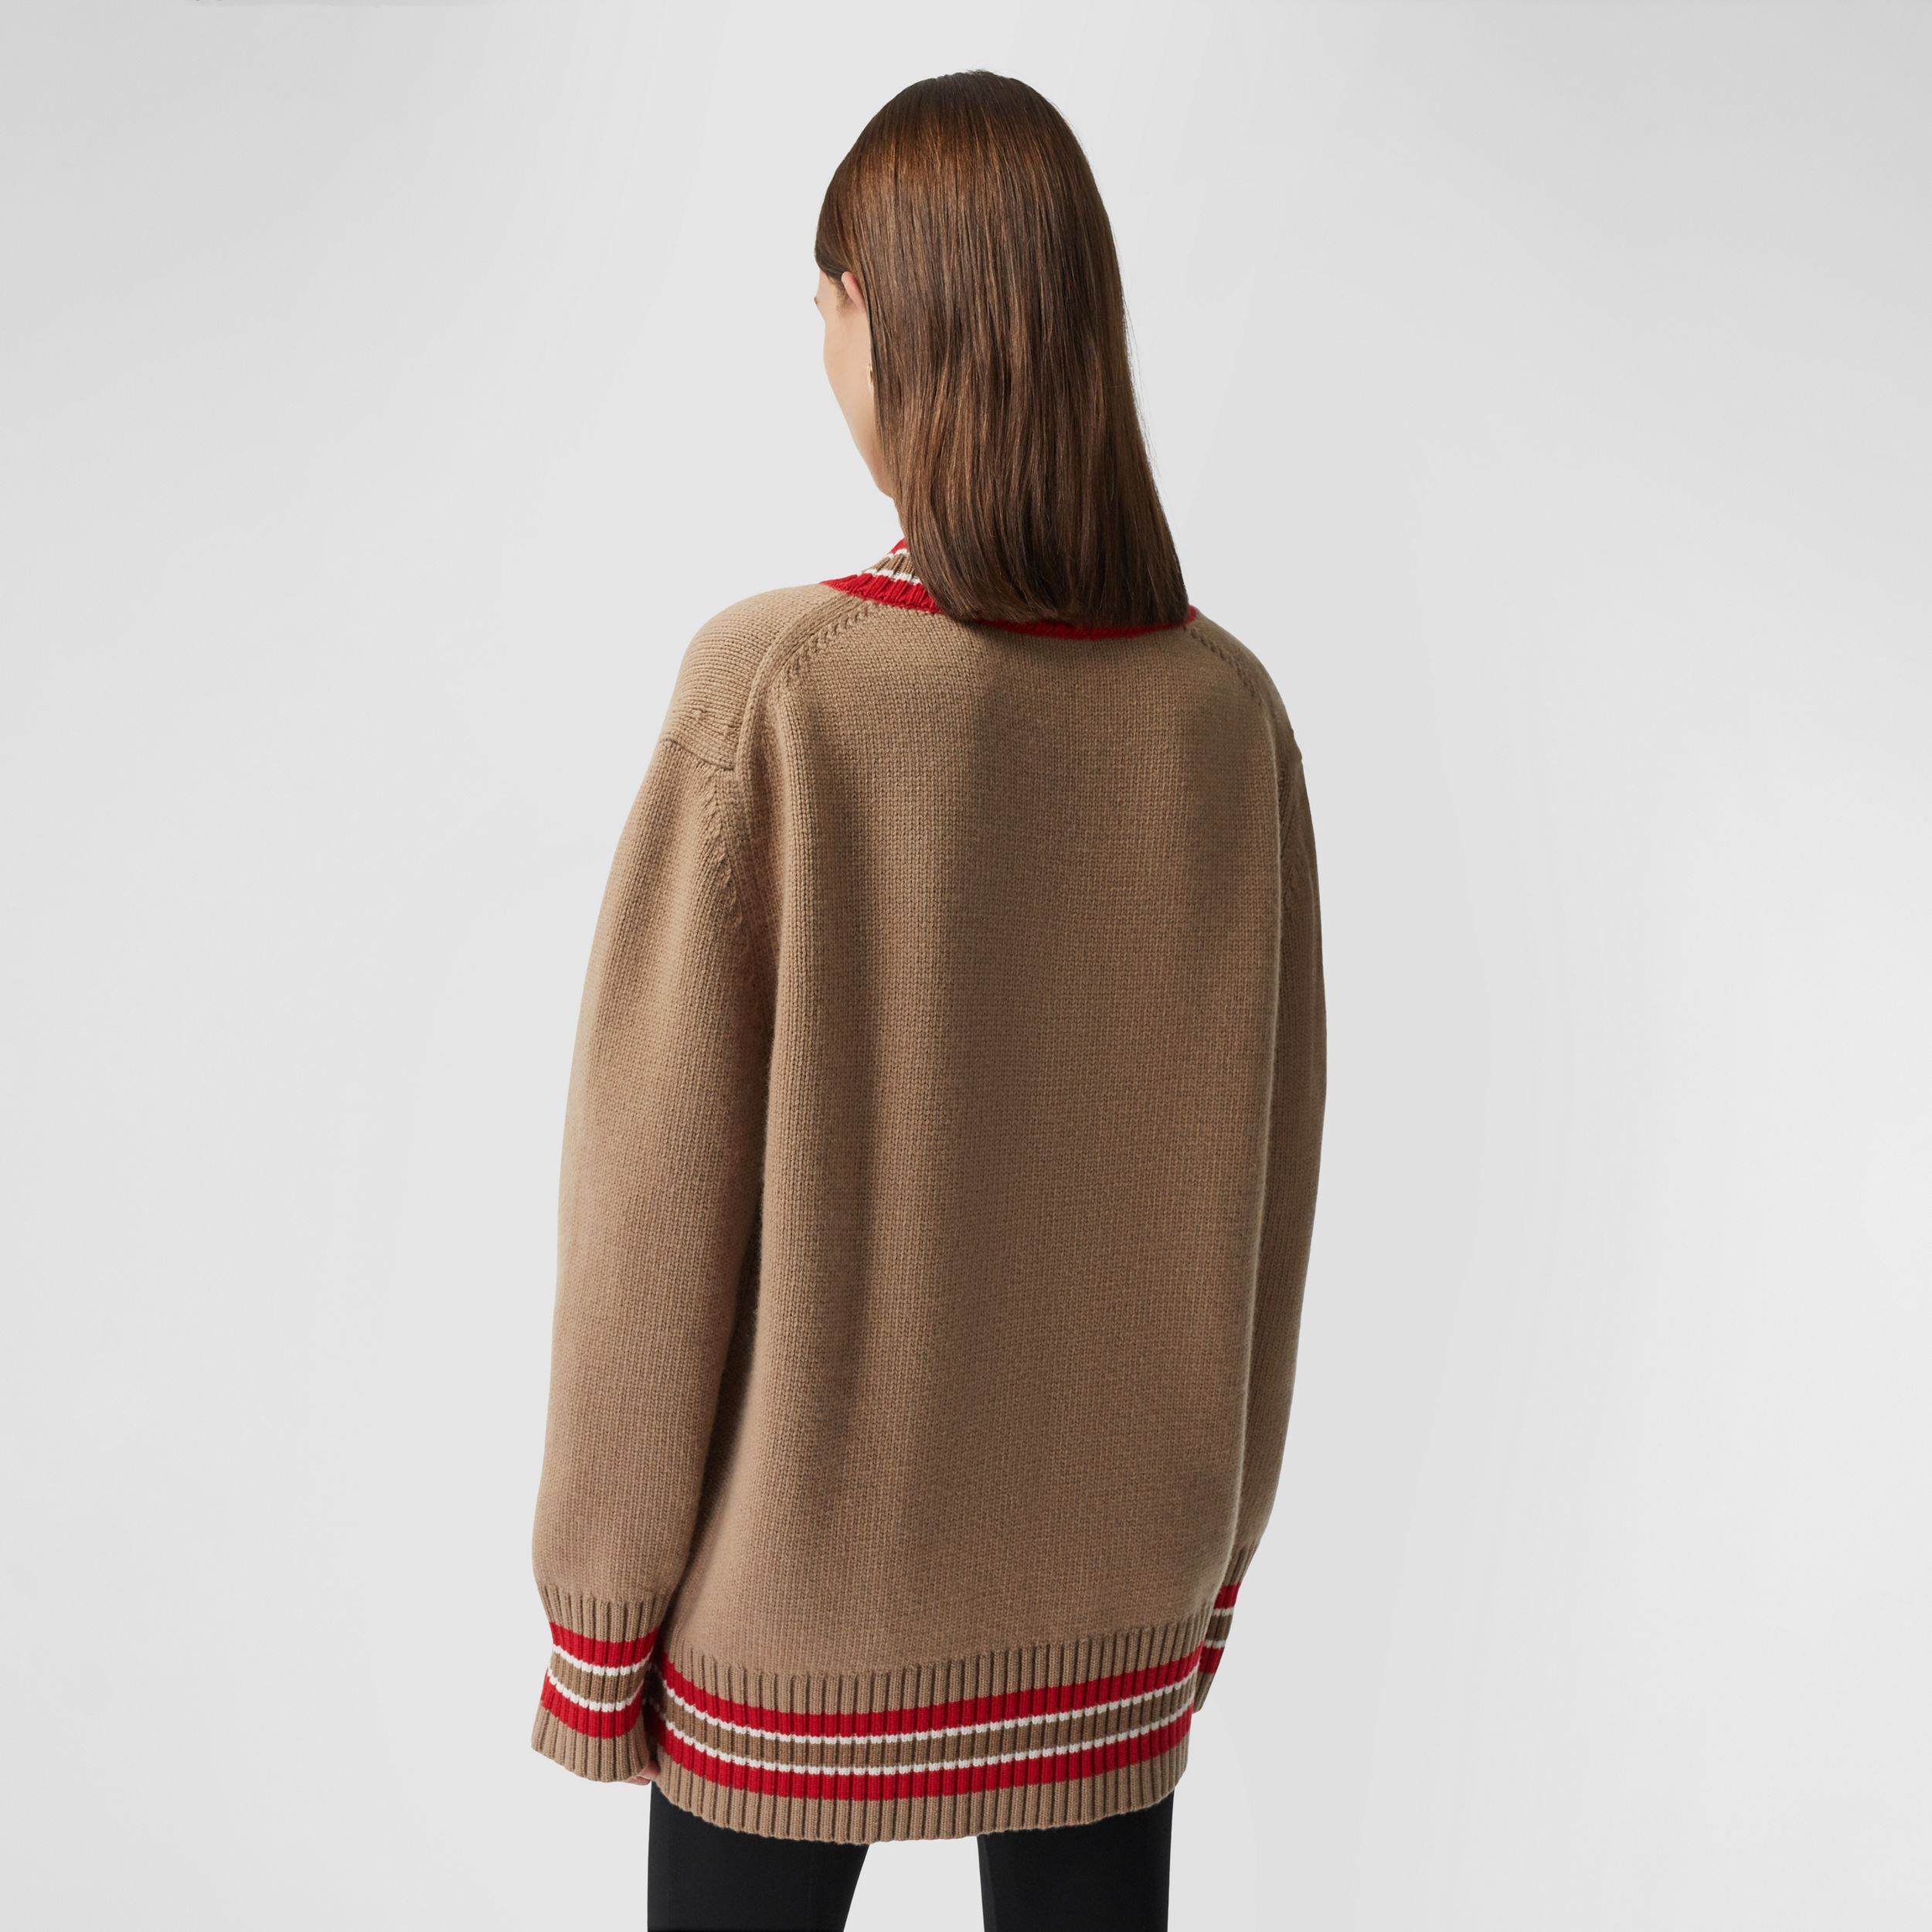 Wool Oversized Cricket Sweater in Camel - Women | Burberry Canada - 3